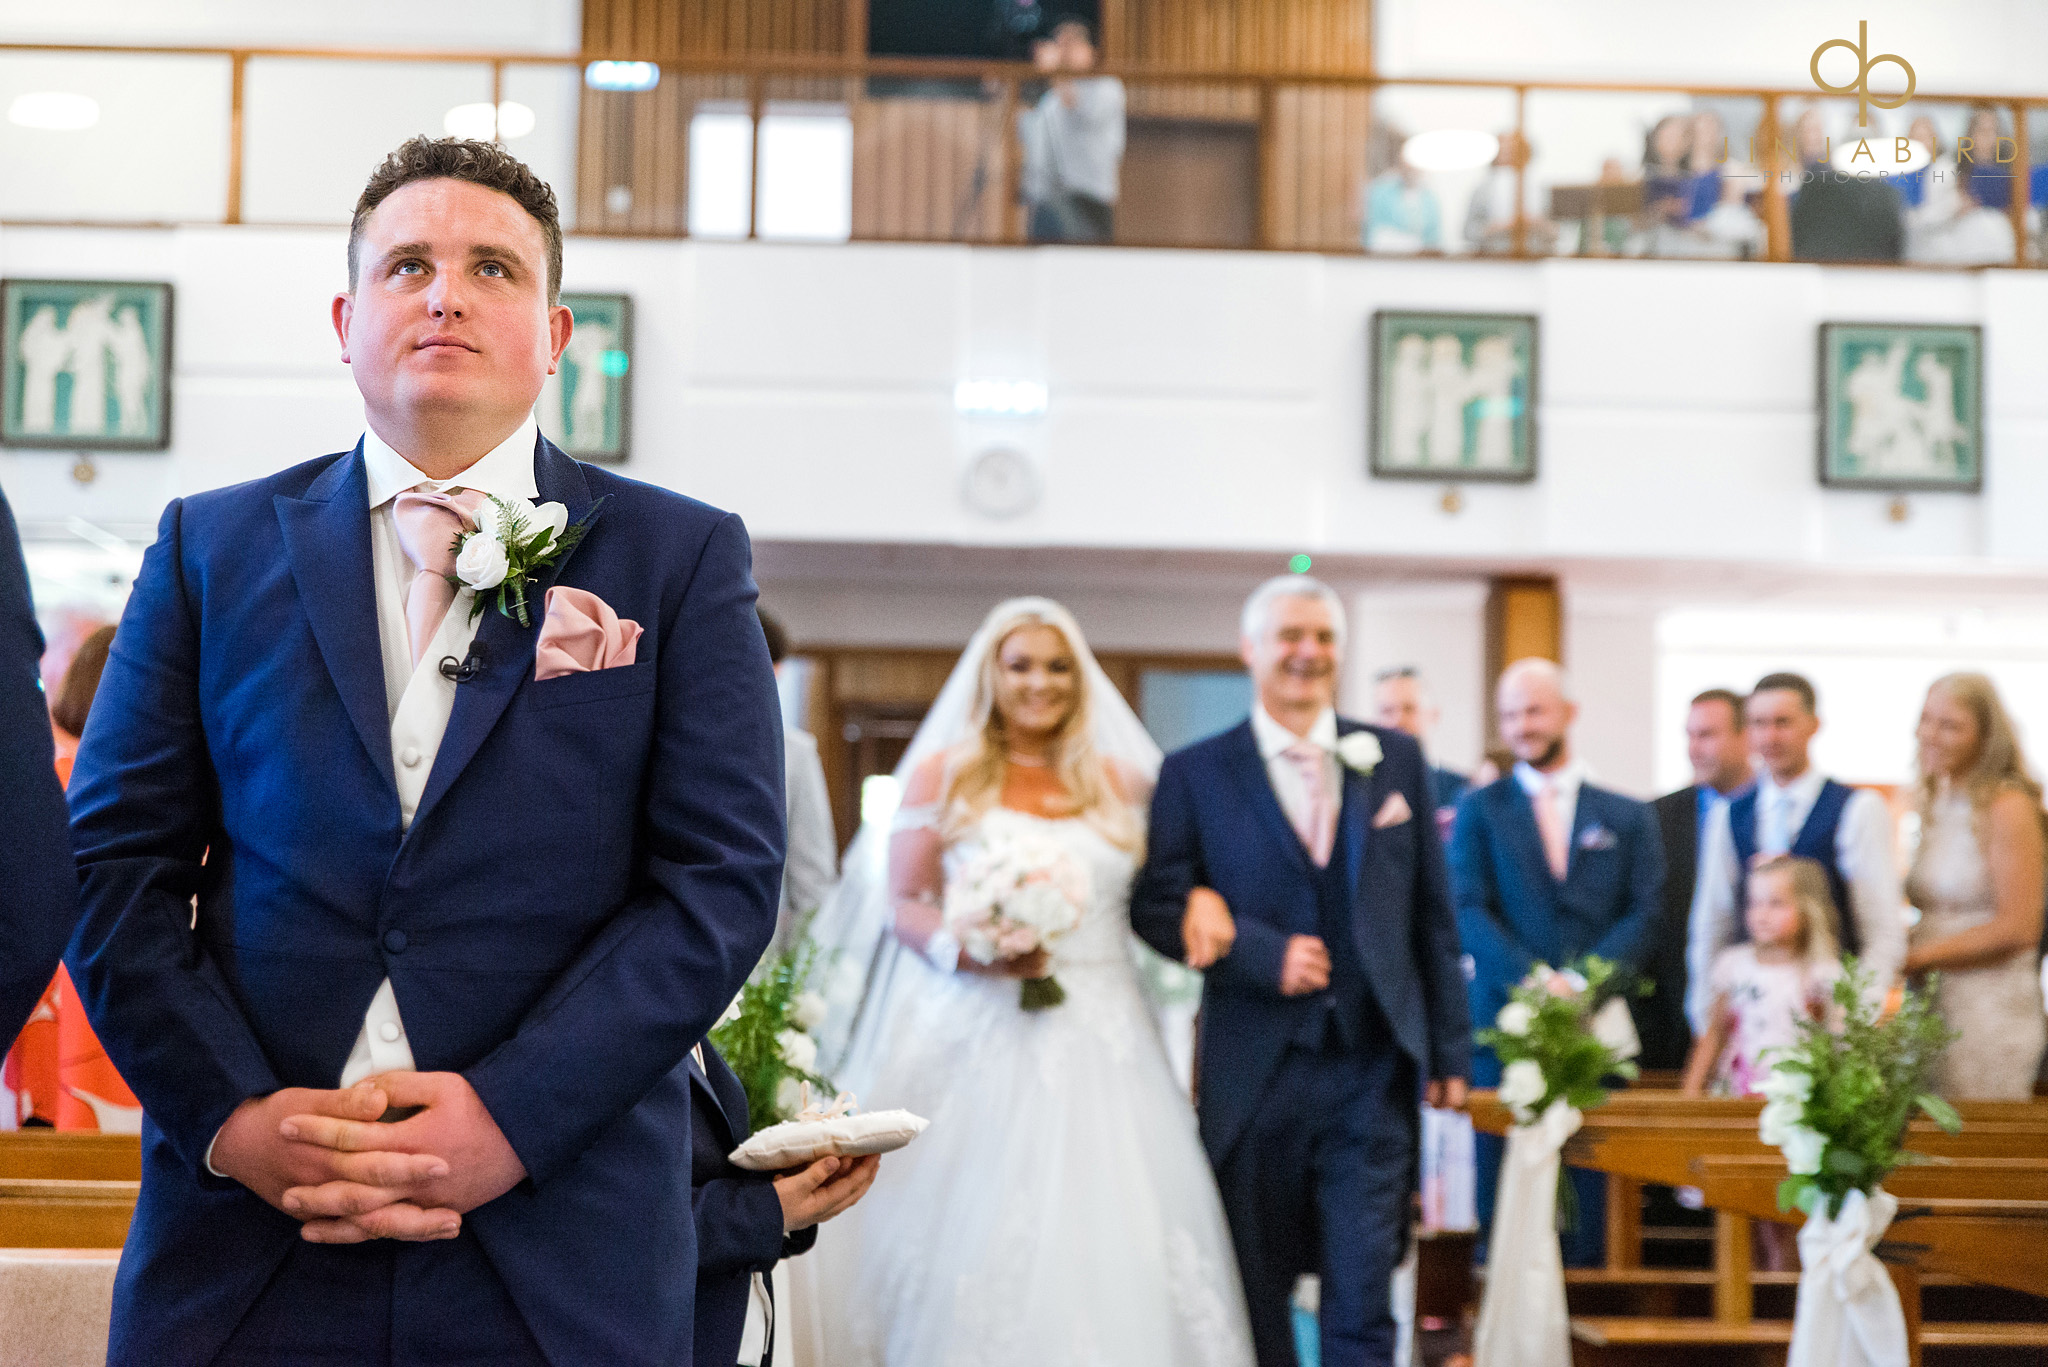 bride coming down aisle with father